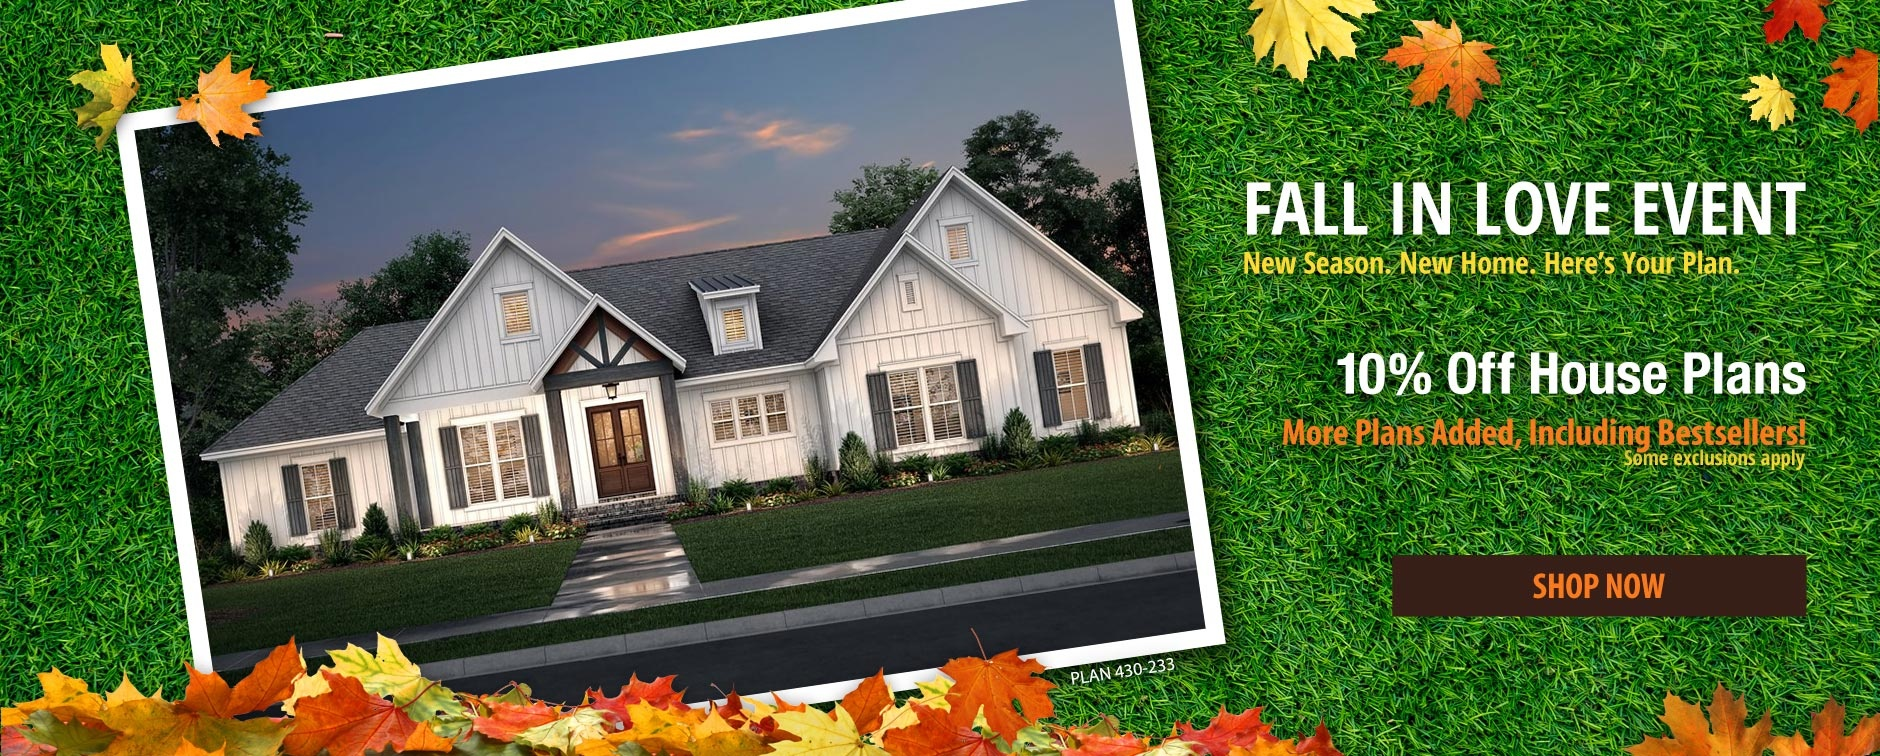 More Plans Added to Home Plan Sale 10% Off